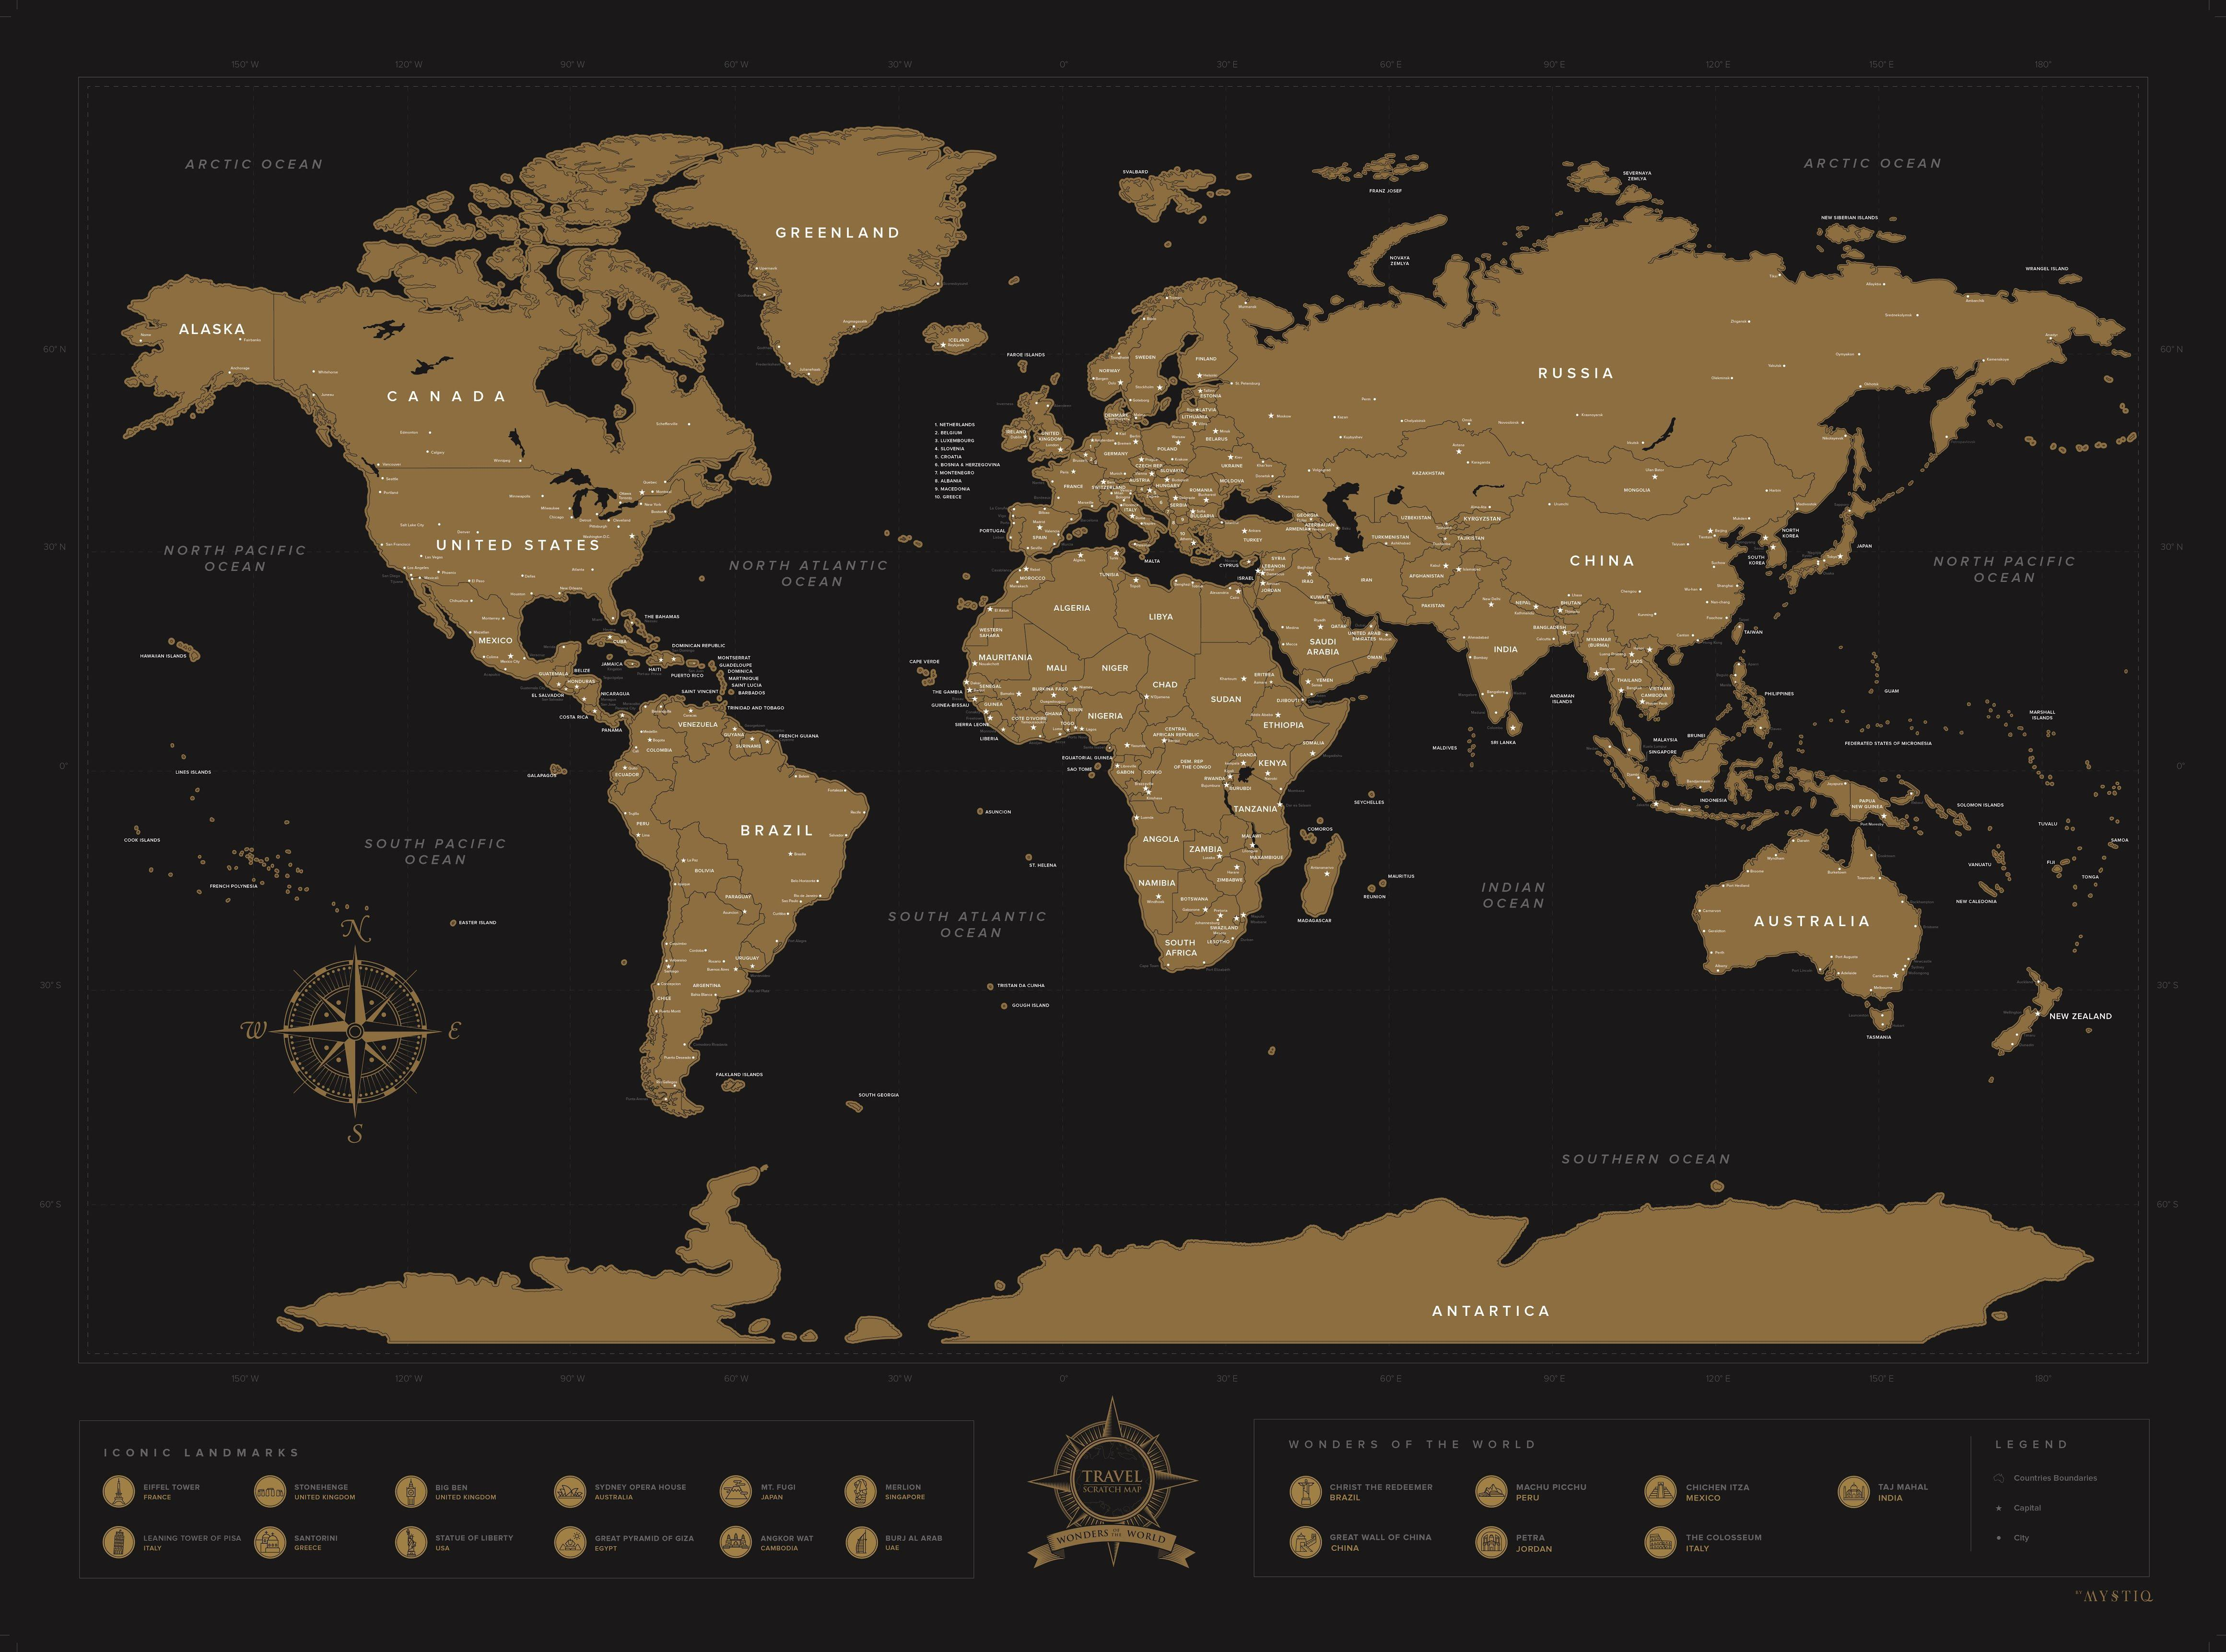 The original world scratch map panda trading lazada ph have for those who love to jet set around the globe and wish to fondly take a glimpse at past memories with a slick black background and scratch off publicscrutiny Image collections